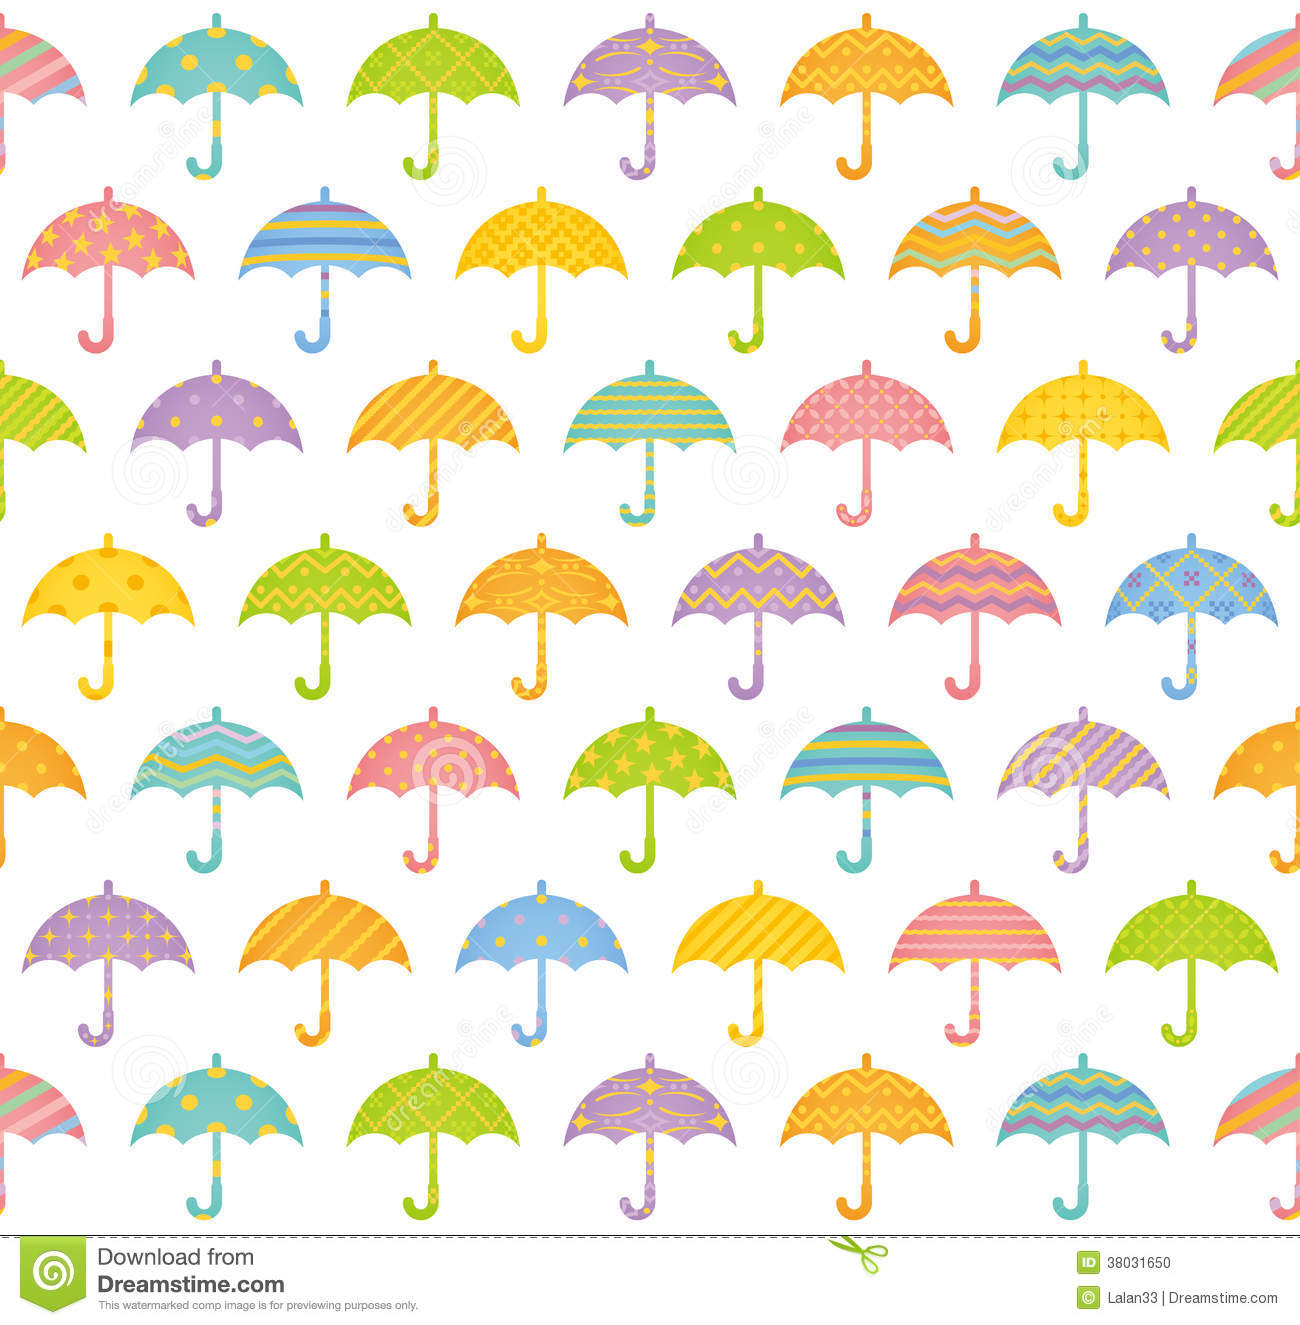 Seamless pattern with colorful umbrellas.